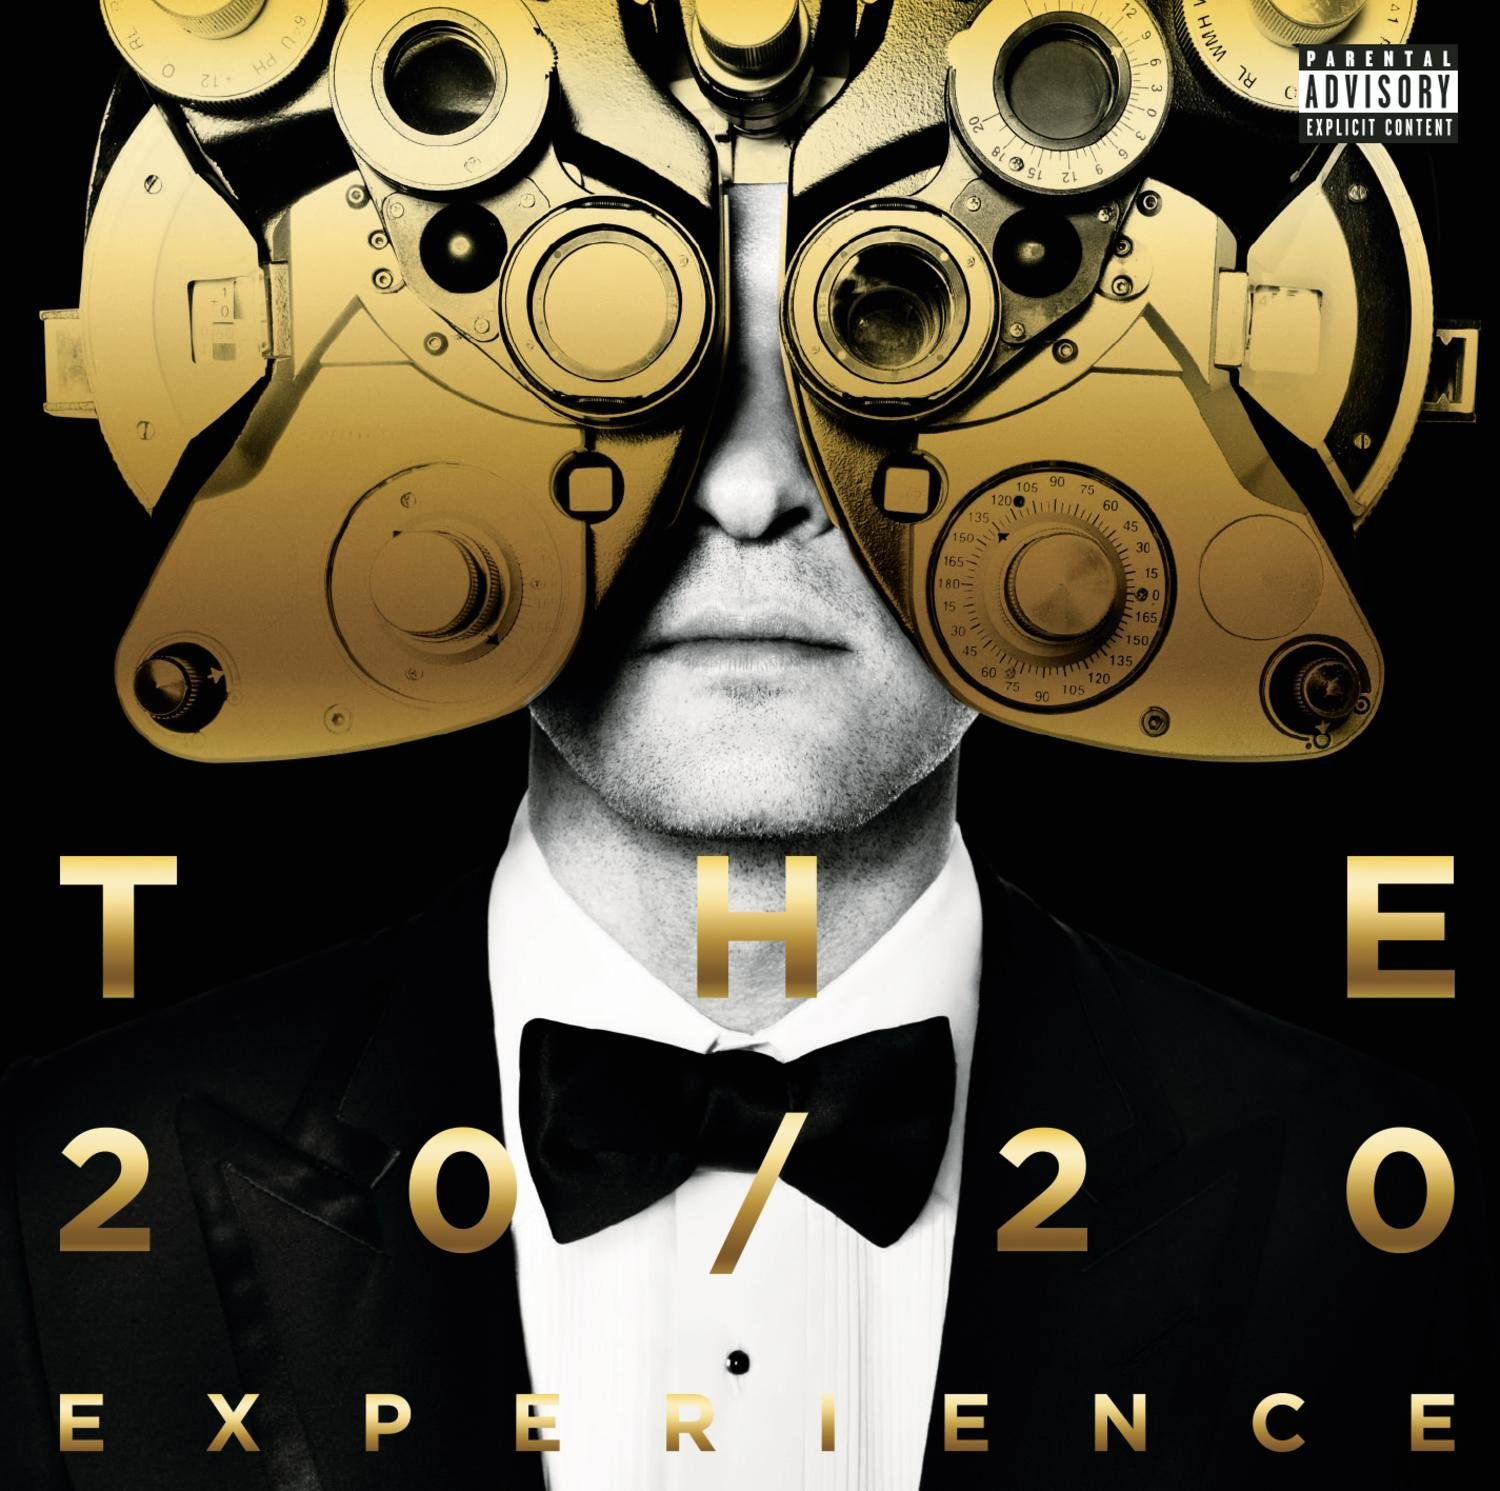 Justin Timberlake, The 20/20 Experience - 2 of 2